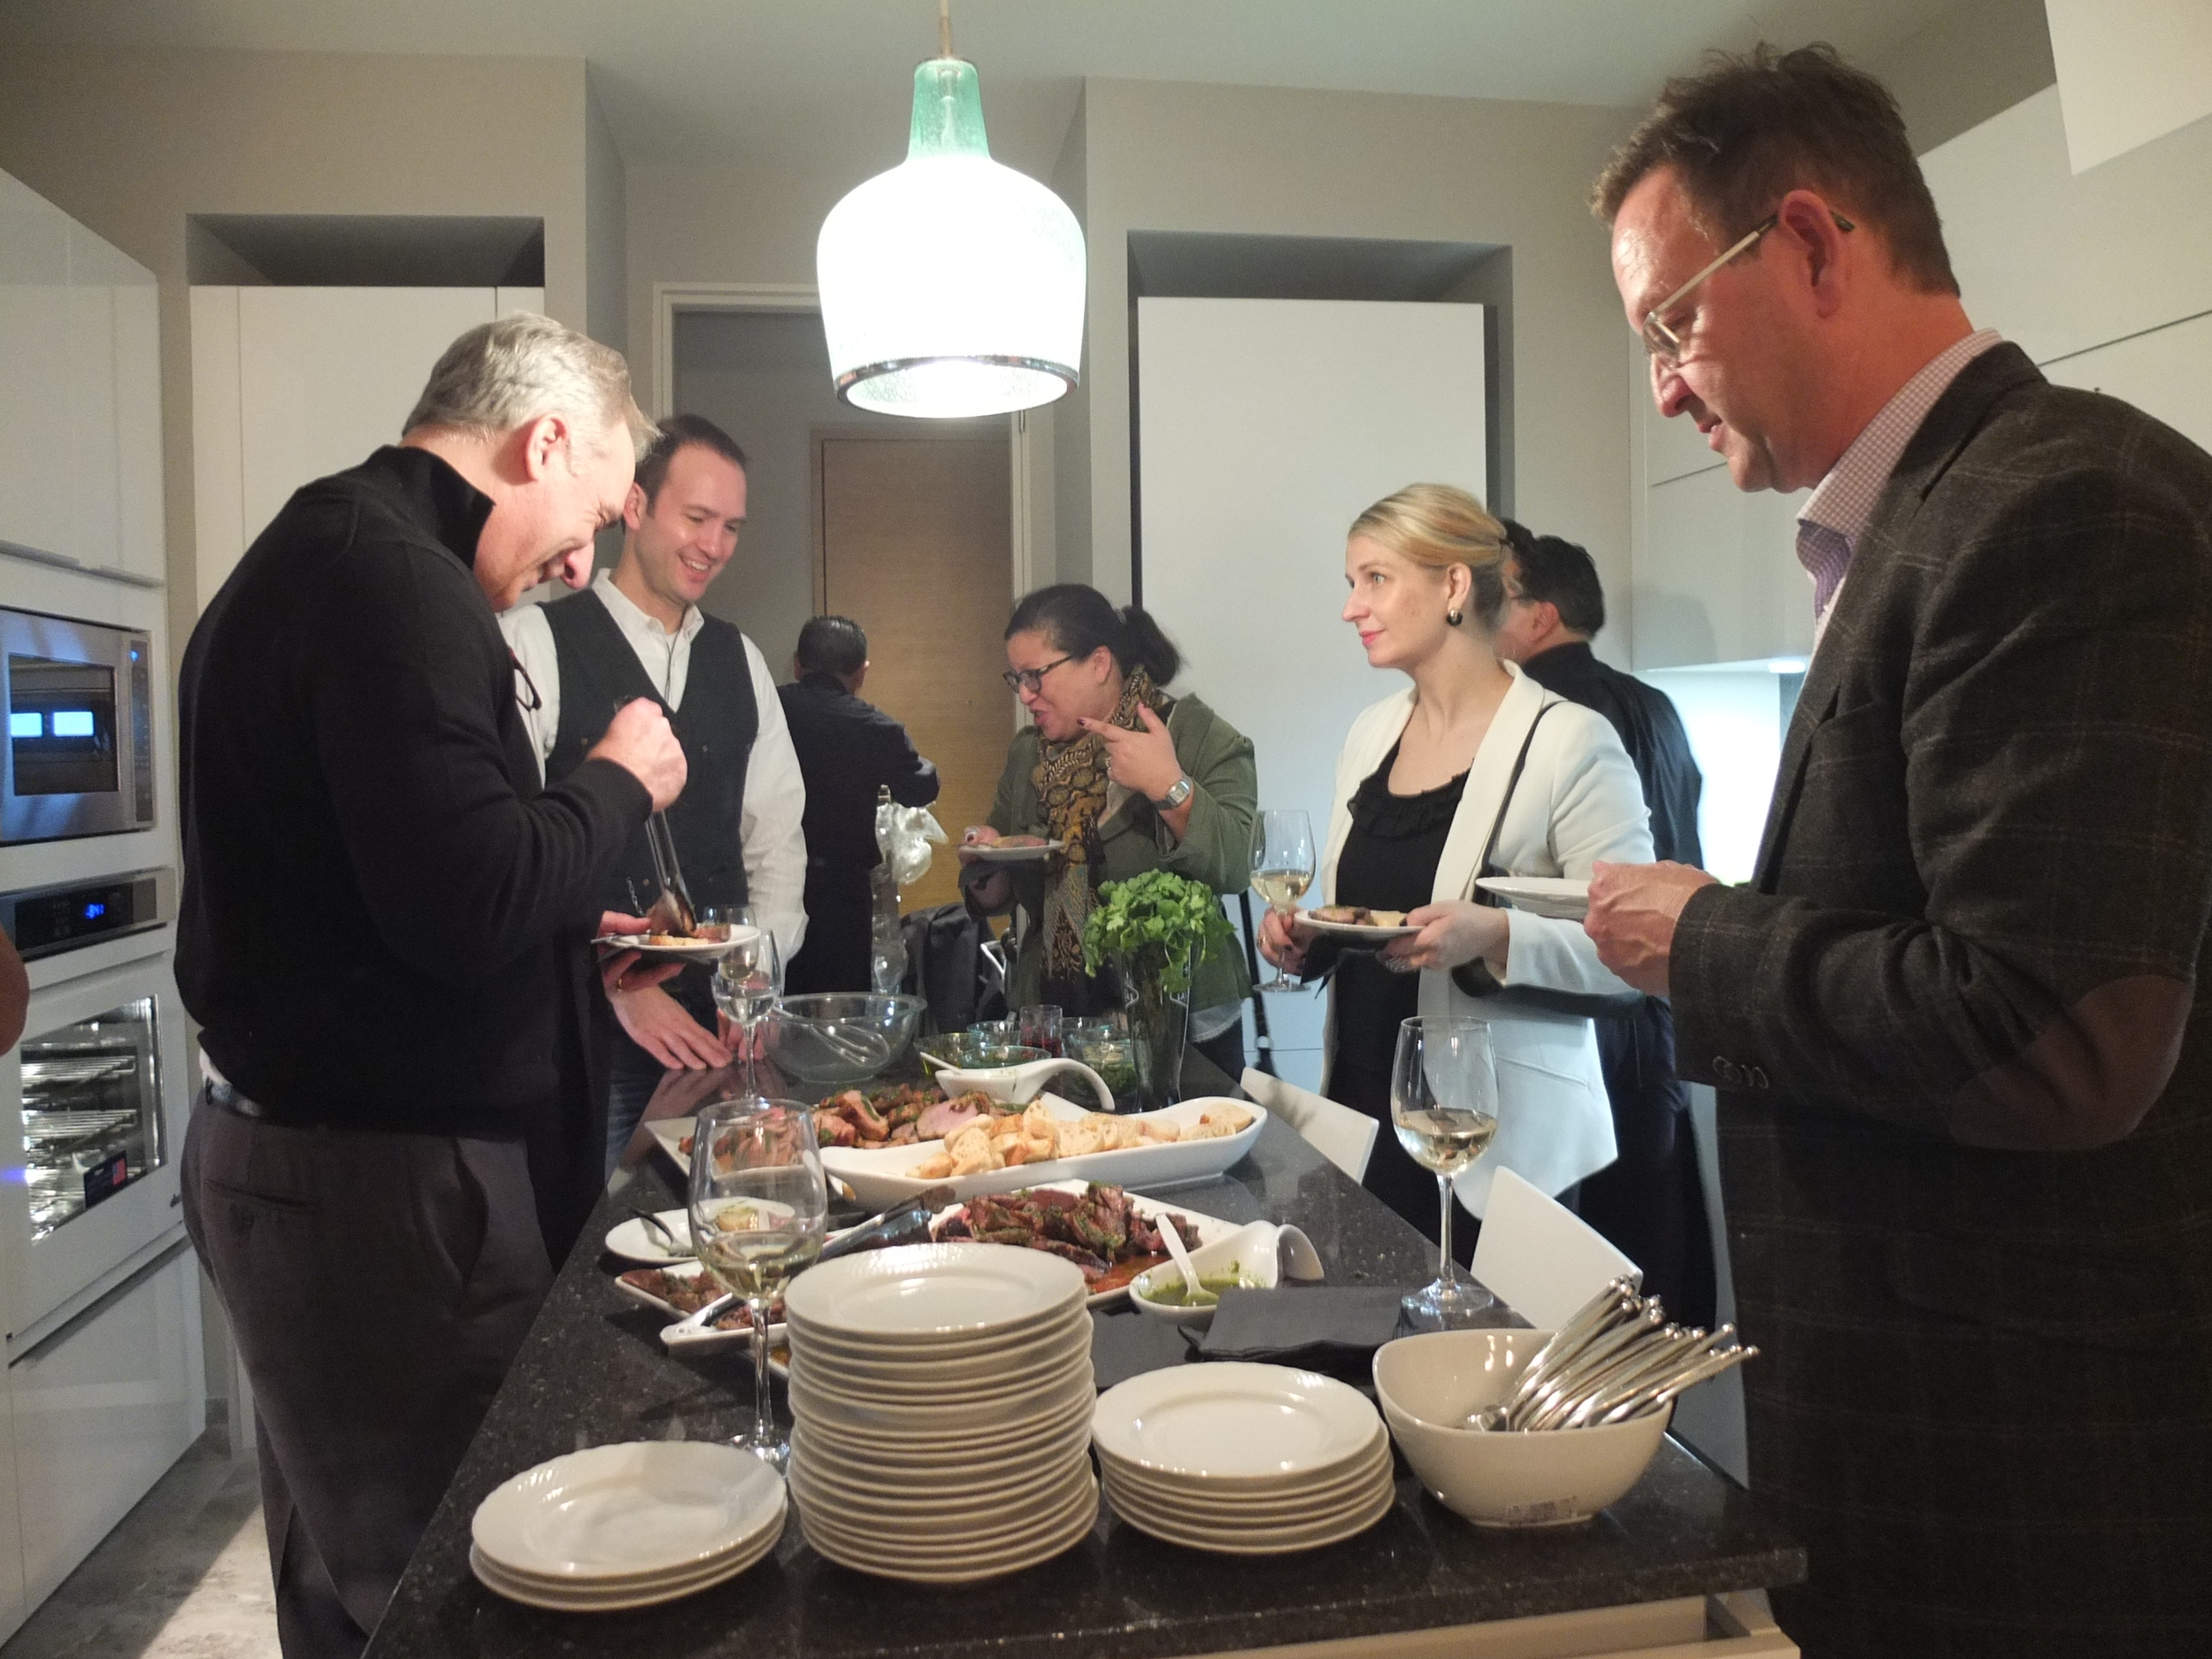 Best of #KBIS2015 | Photo taken during the Kitchen and Bath Industry Show (KBIS) penthouse party | Carla Aston reporting from Modenus' #BlogTourVegas